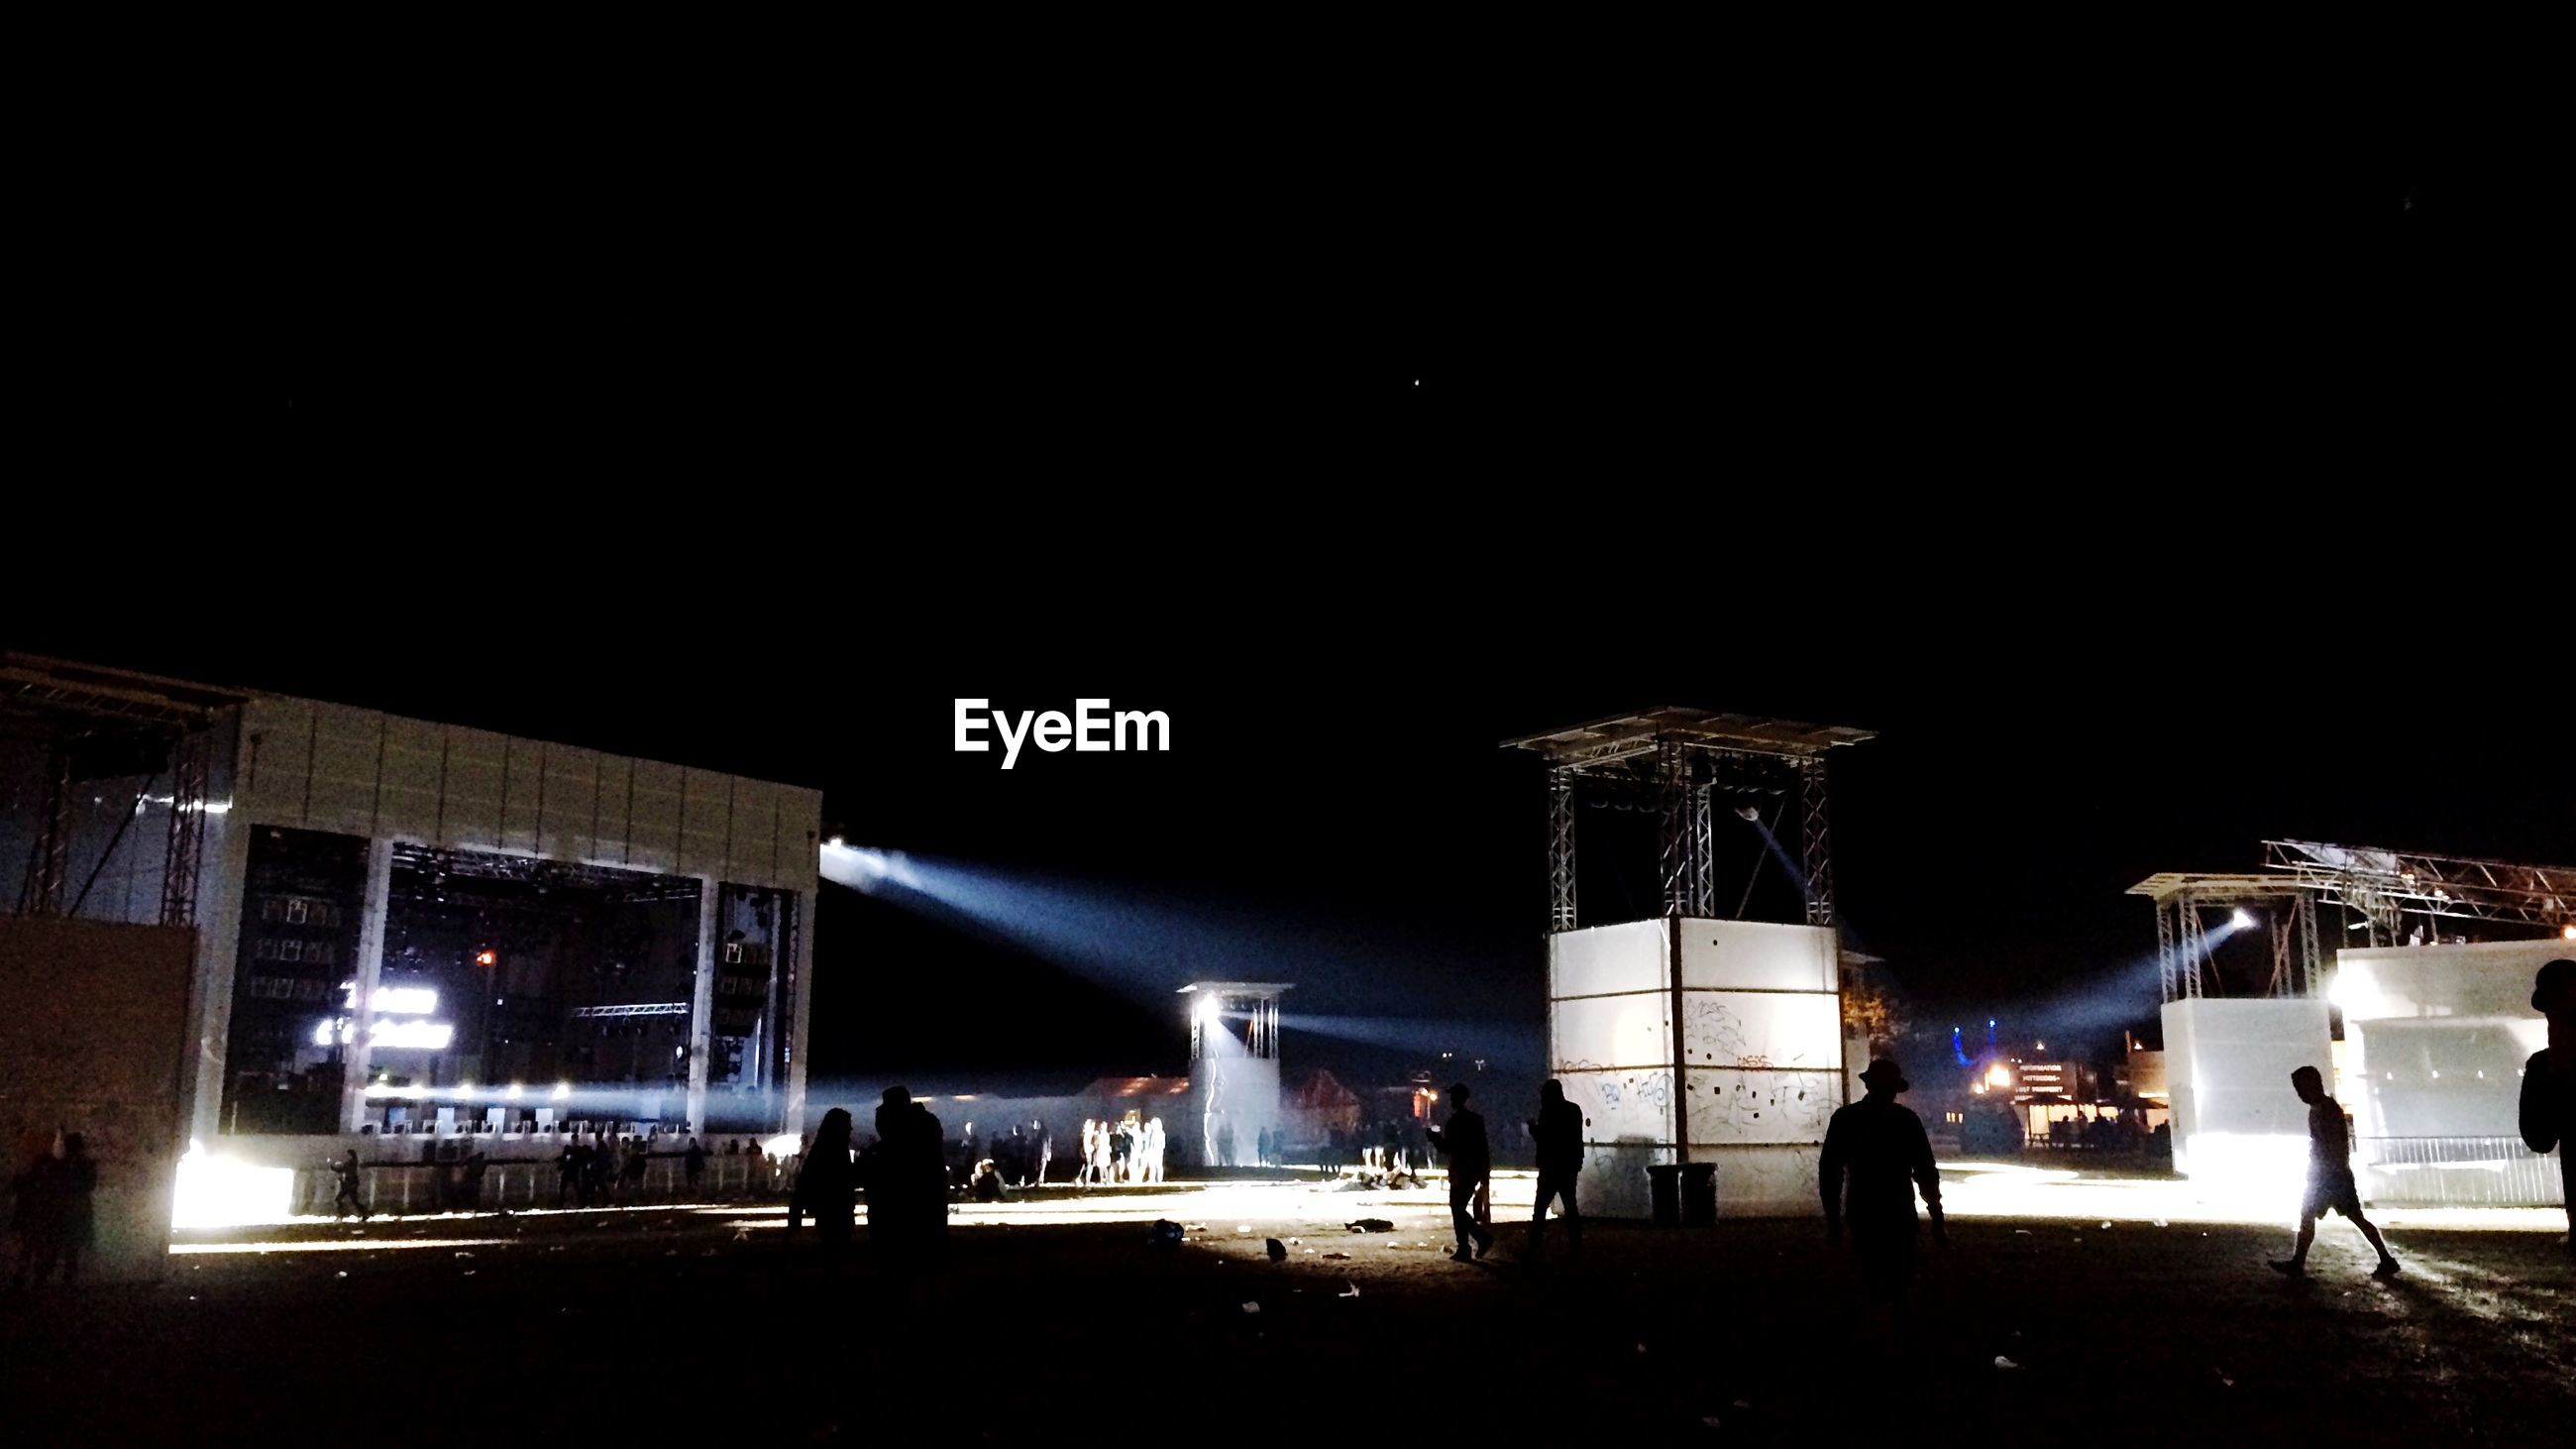 Group of people against built structure at night